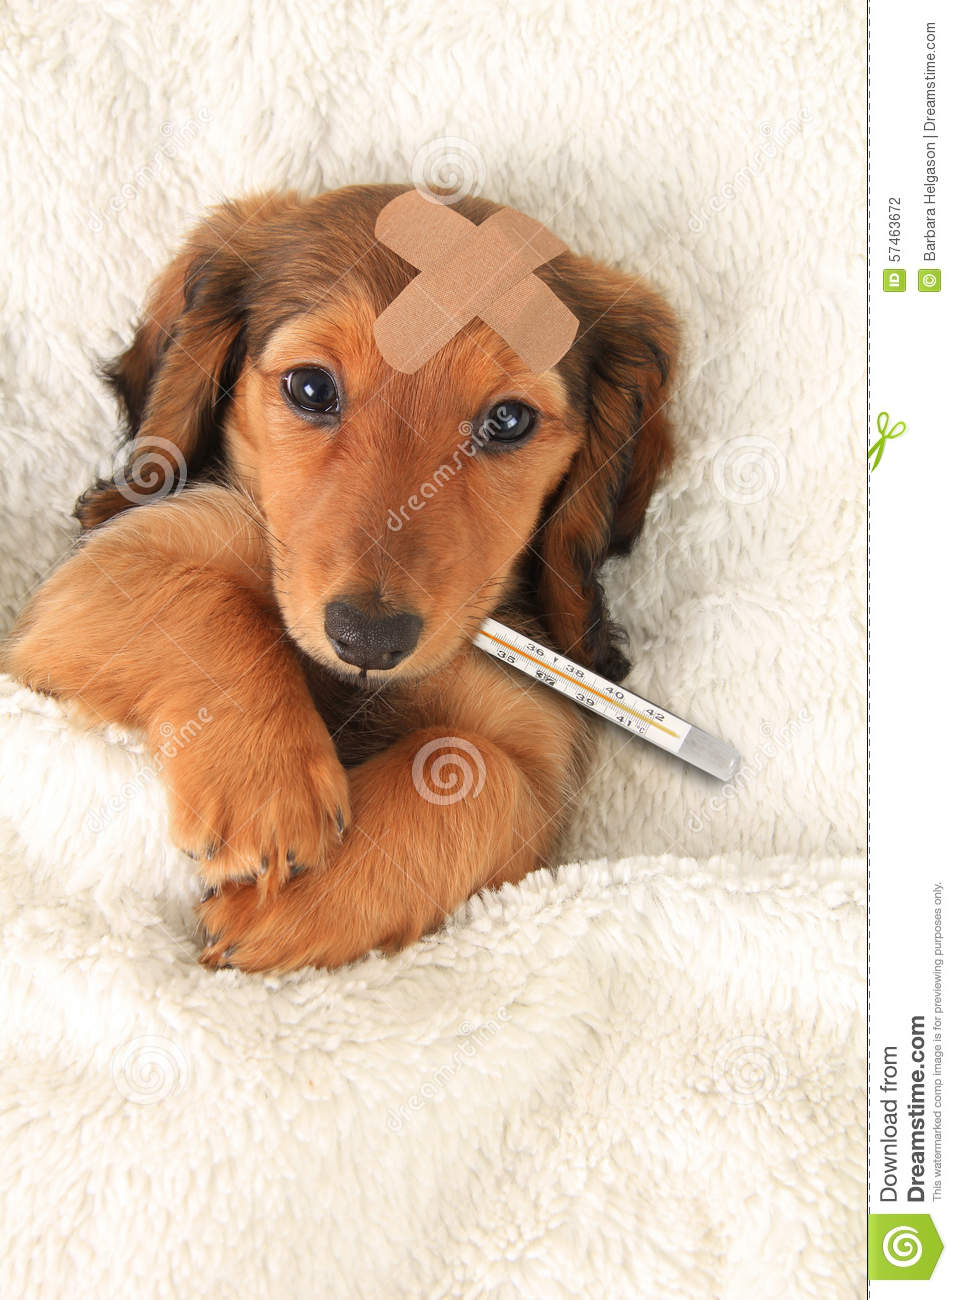 Sick dachshund puppy with a bandaid and thermometer.